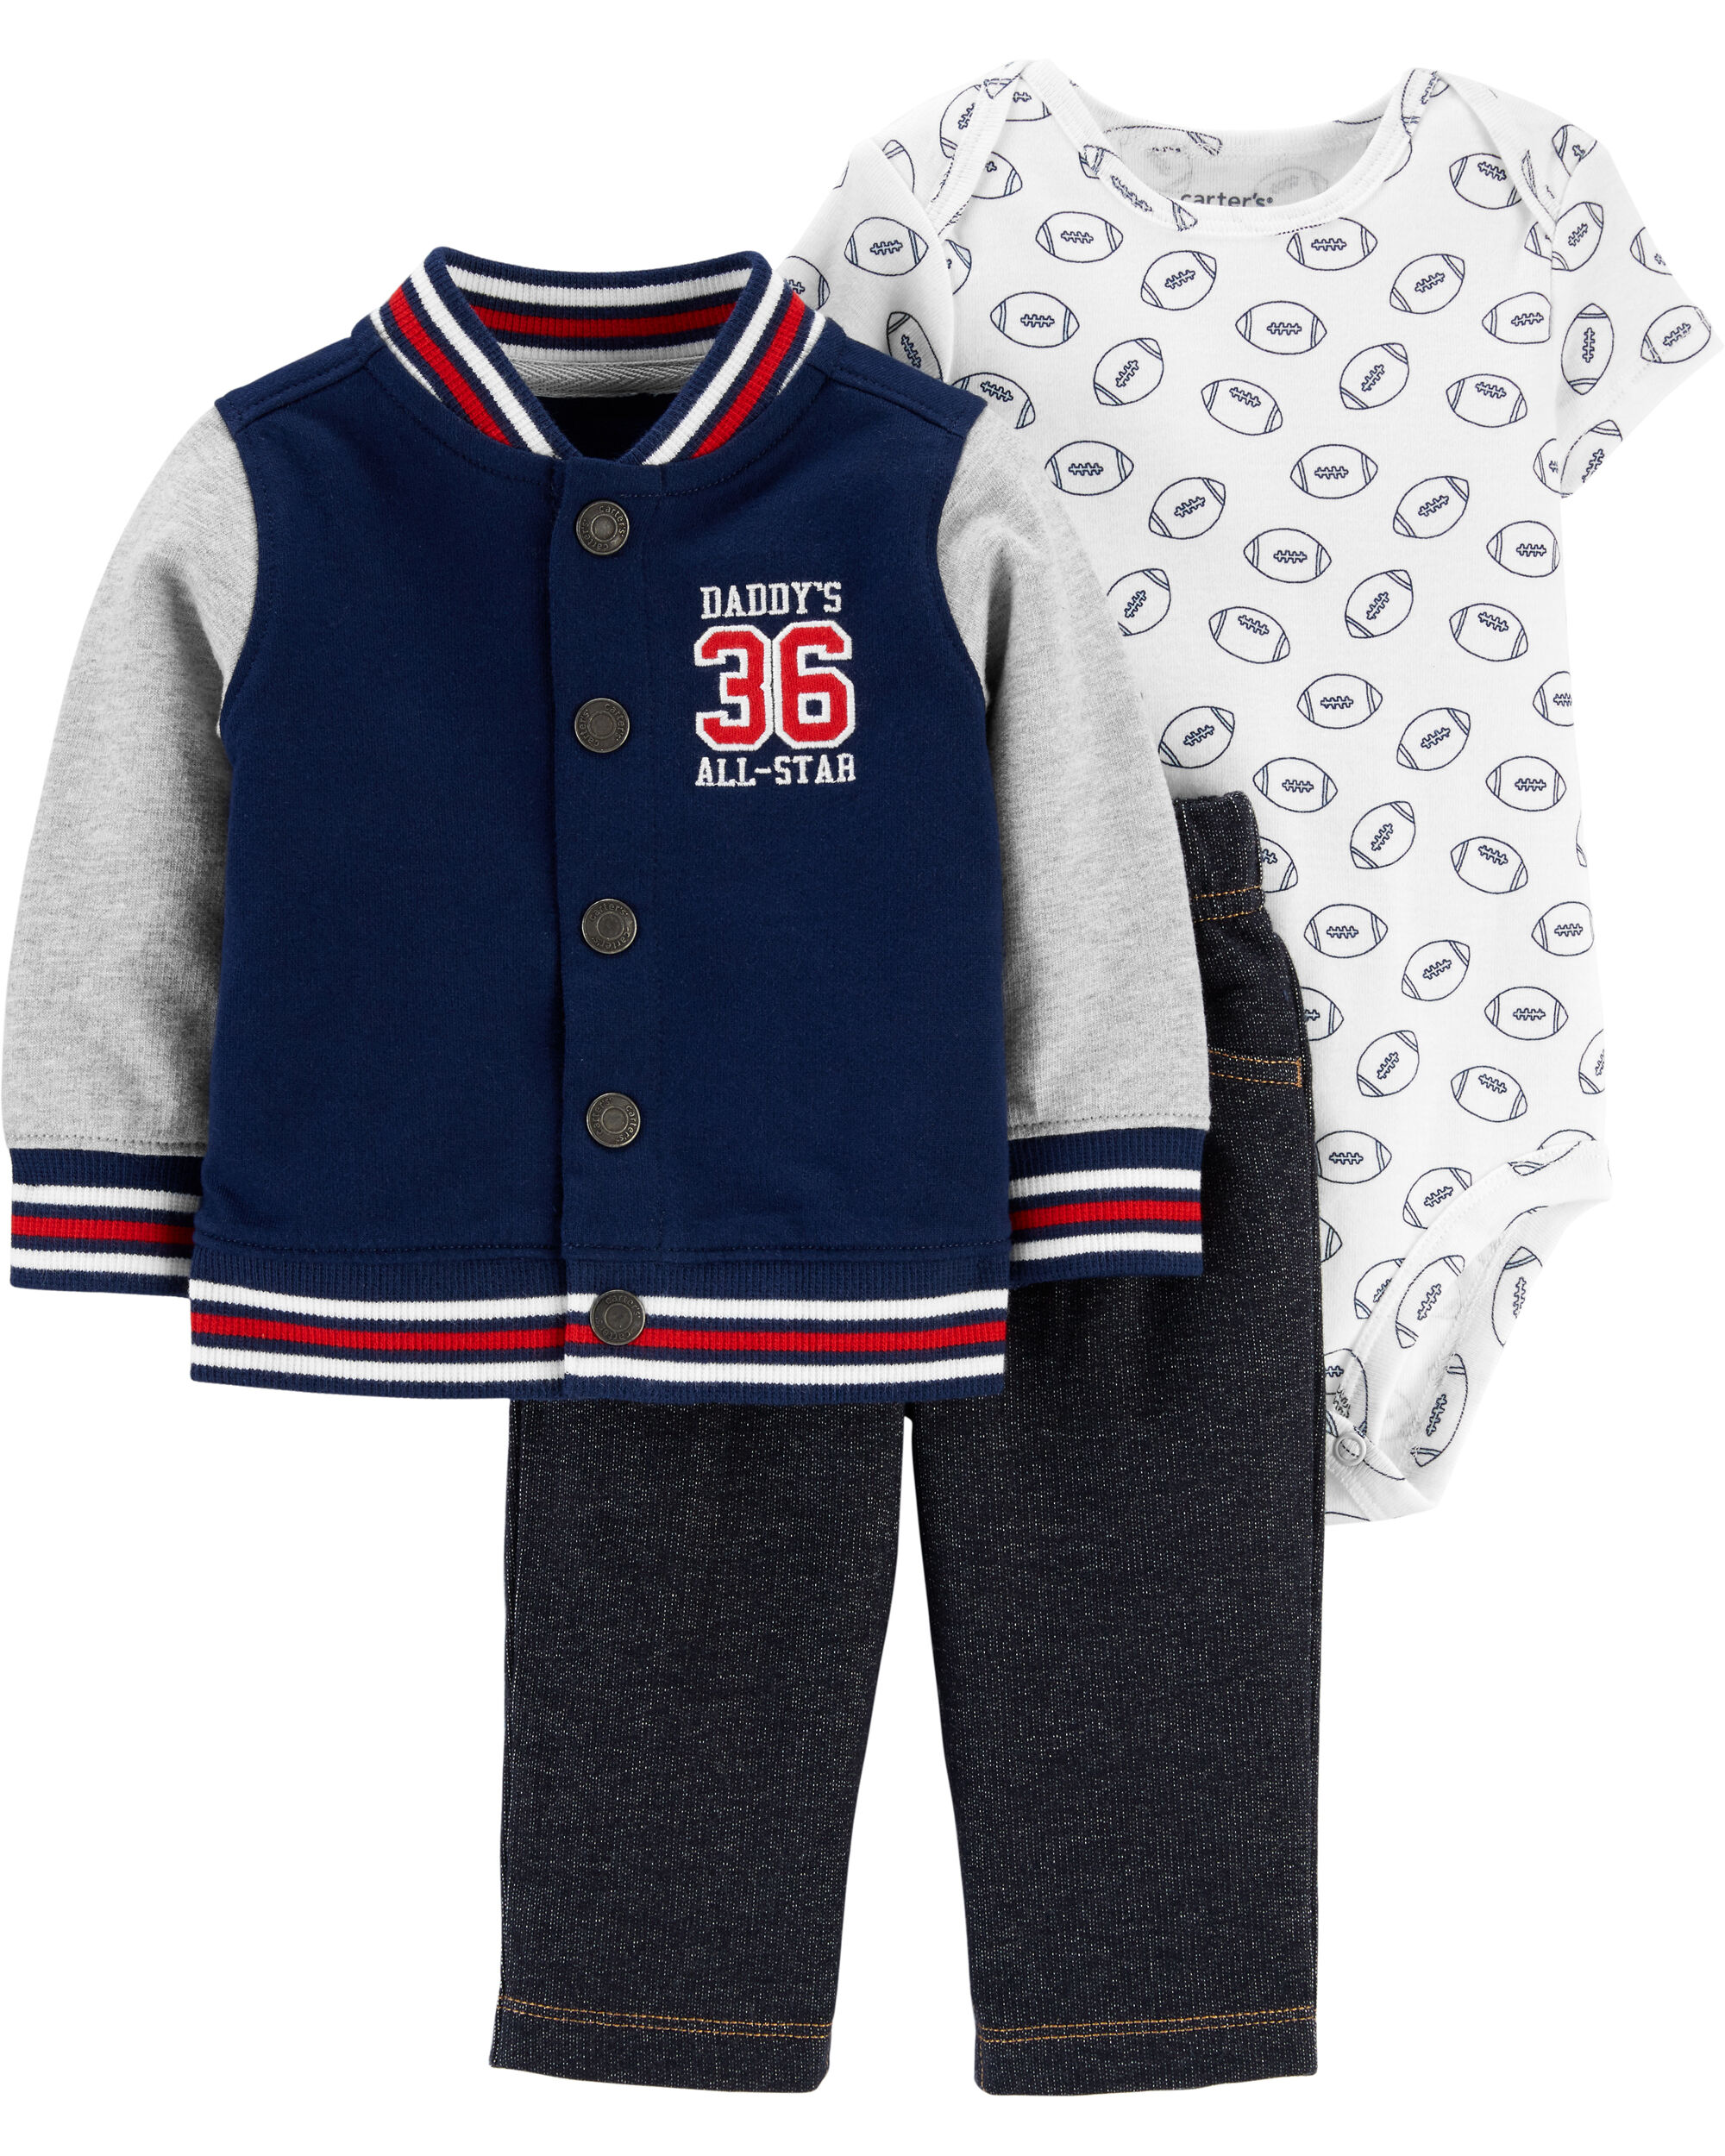 3-Piece Varsity Little Jacket Set